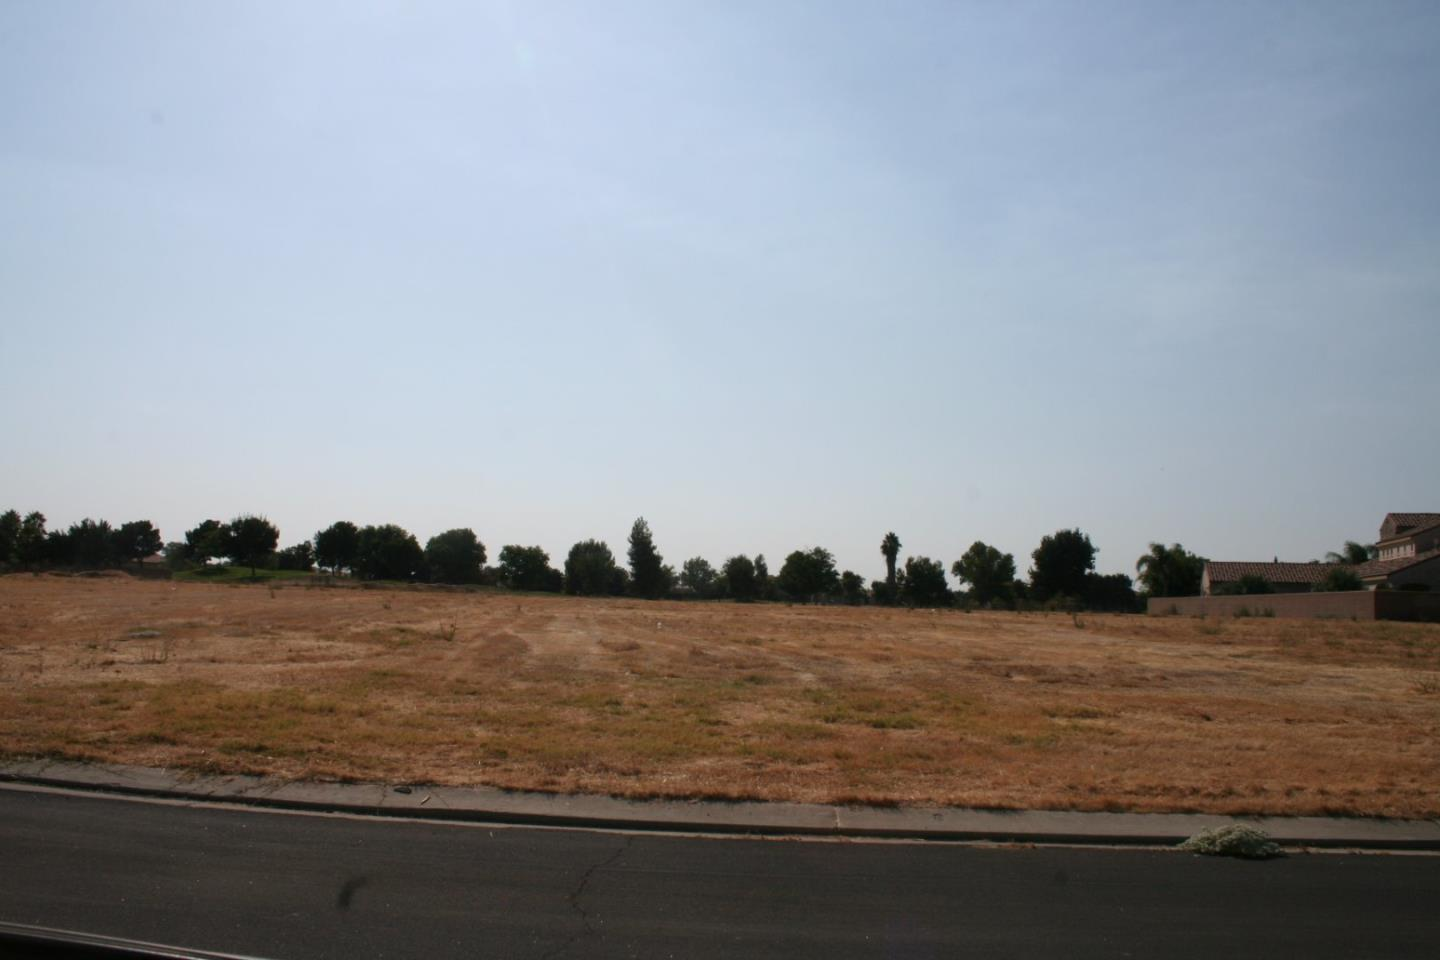 Land for Sale at 10130 Kaanapali Court 10130 Kaanapali Court Chowchilla, California 93610 United States